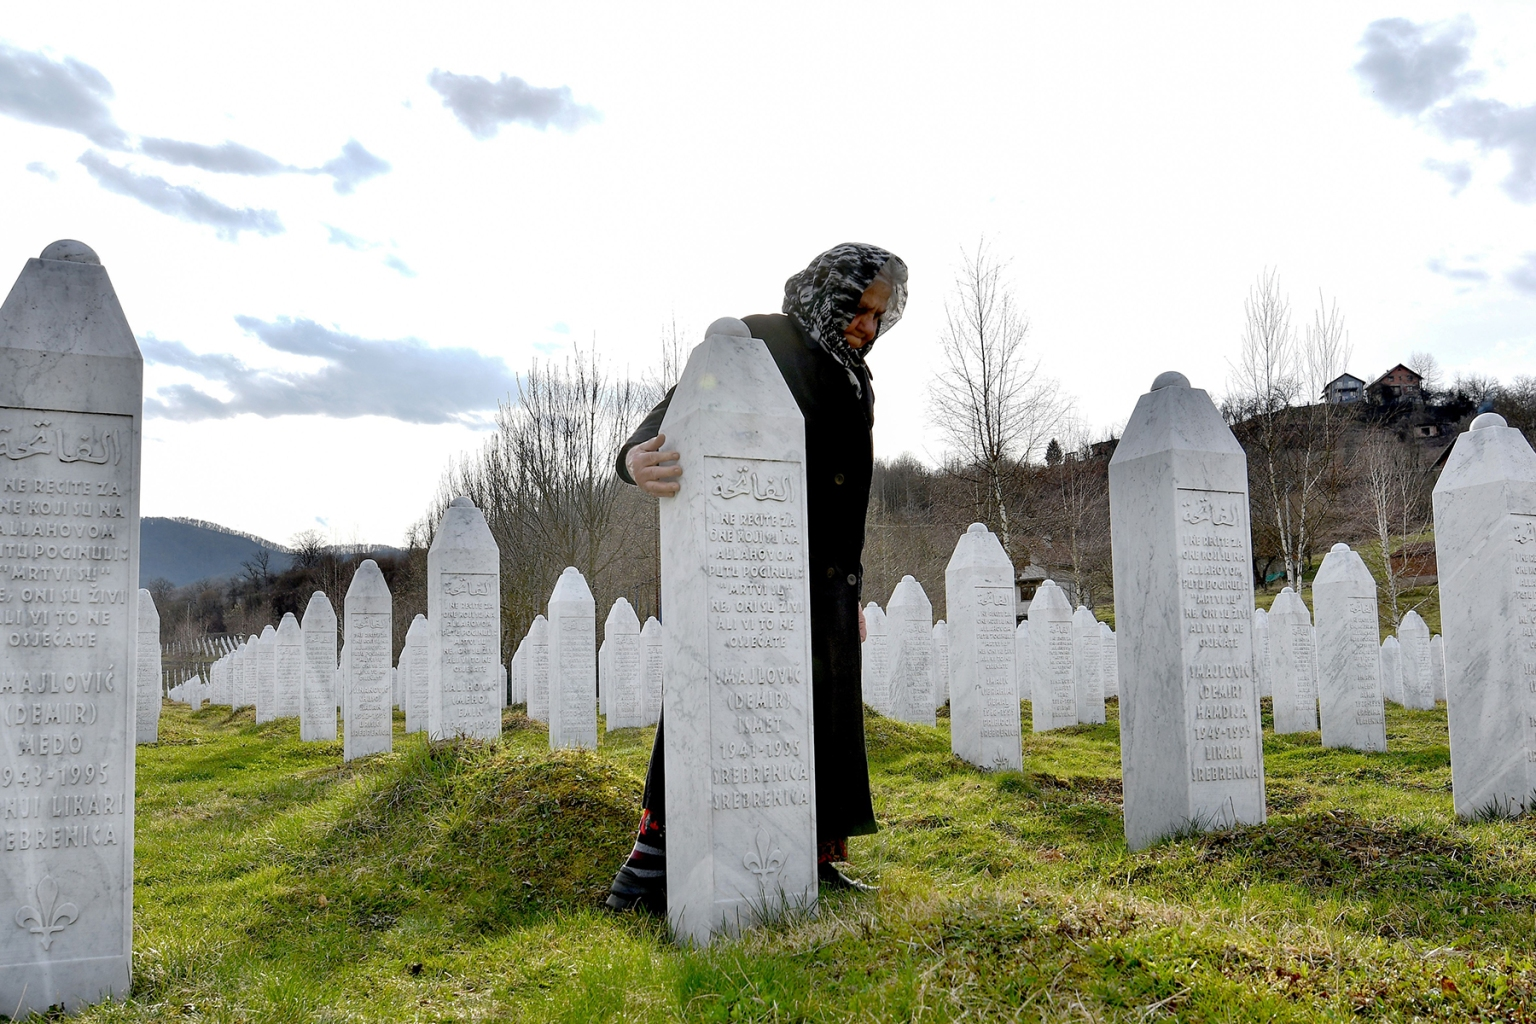 Vasva Smajlovic, a survivor of Srebrenica massacre in July 1995, stands next to her husband's tombstone, during a visit to the Srebrenica-Potocari memorial cemetery on March 15. ELVIS BARUKCIC/AFP/Getty Images